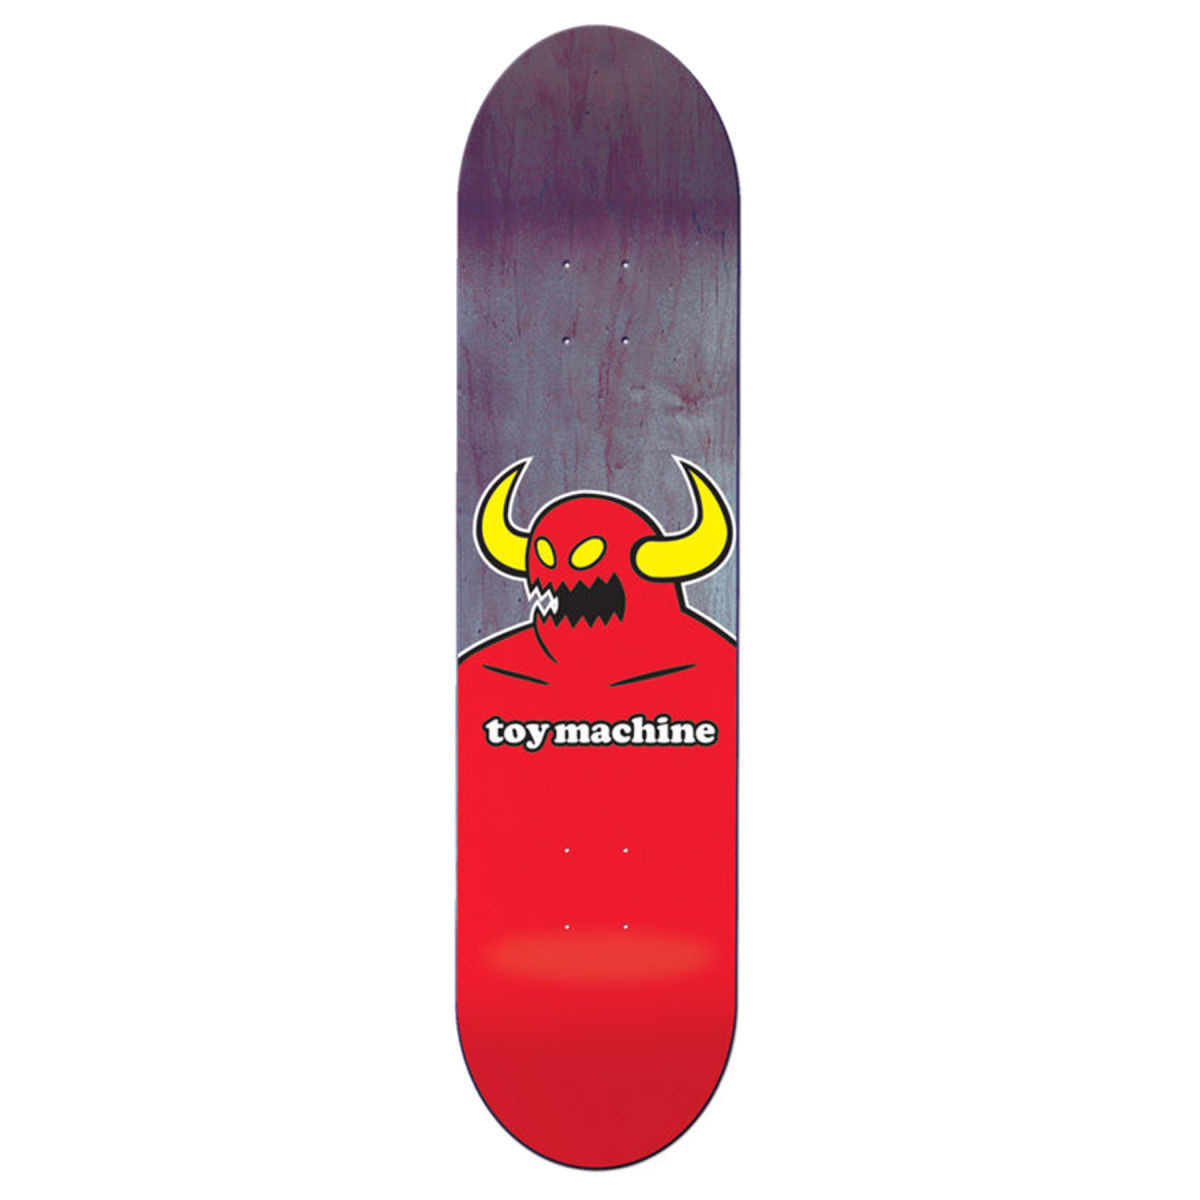 Toy machine Monster Deck (Assorted Stains)